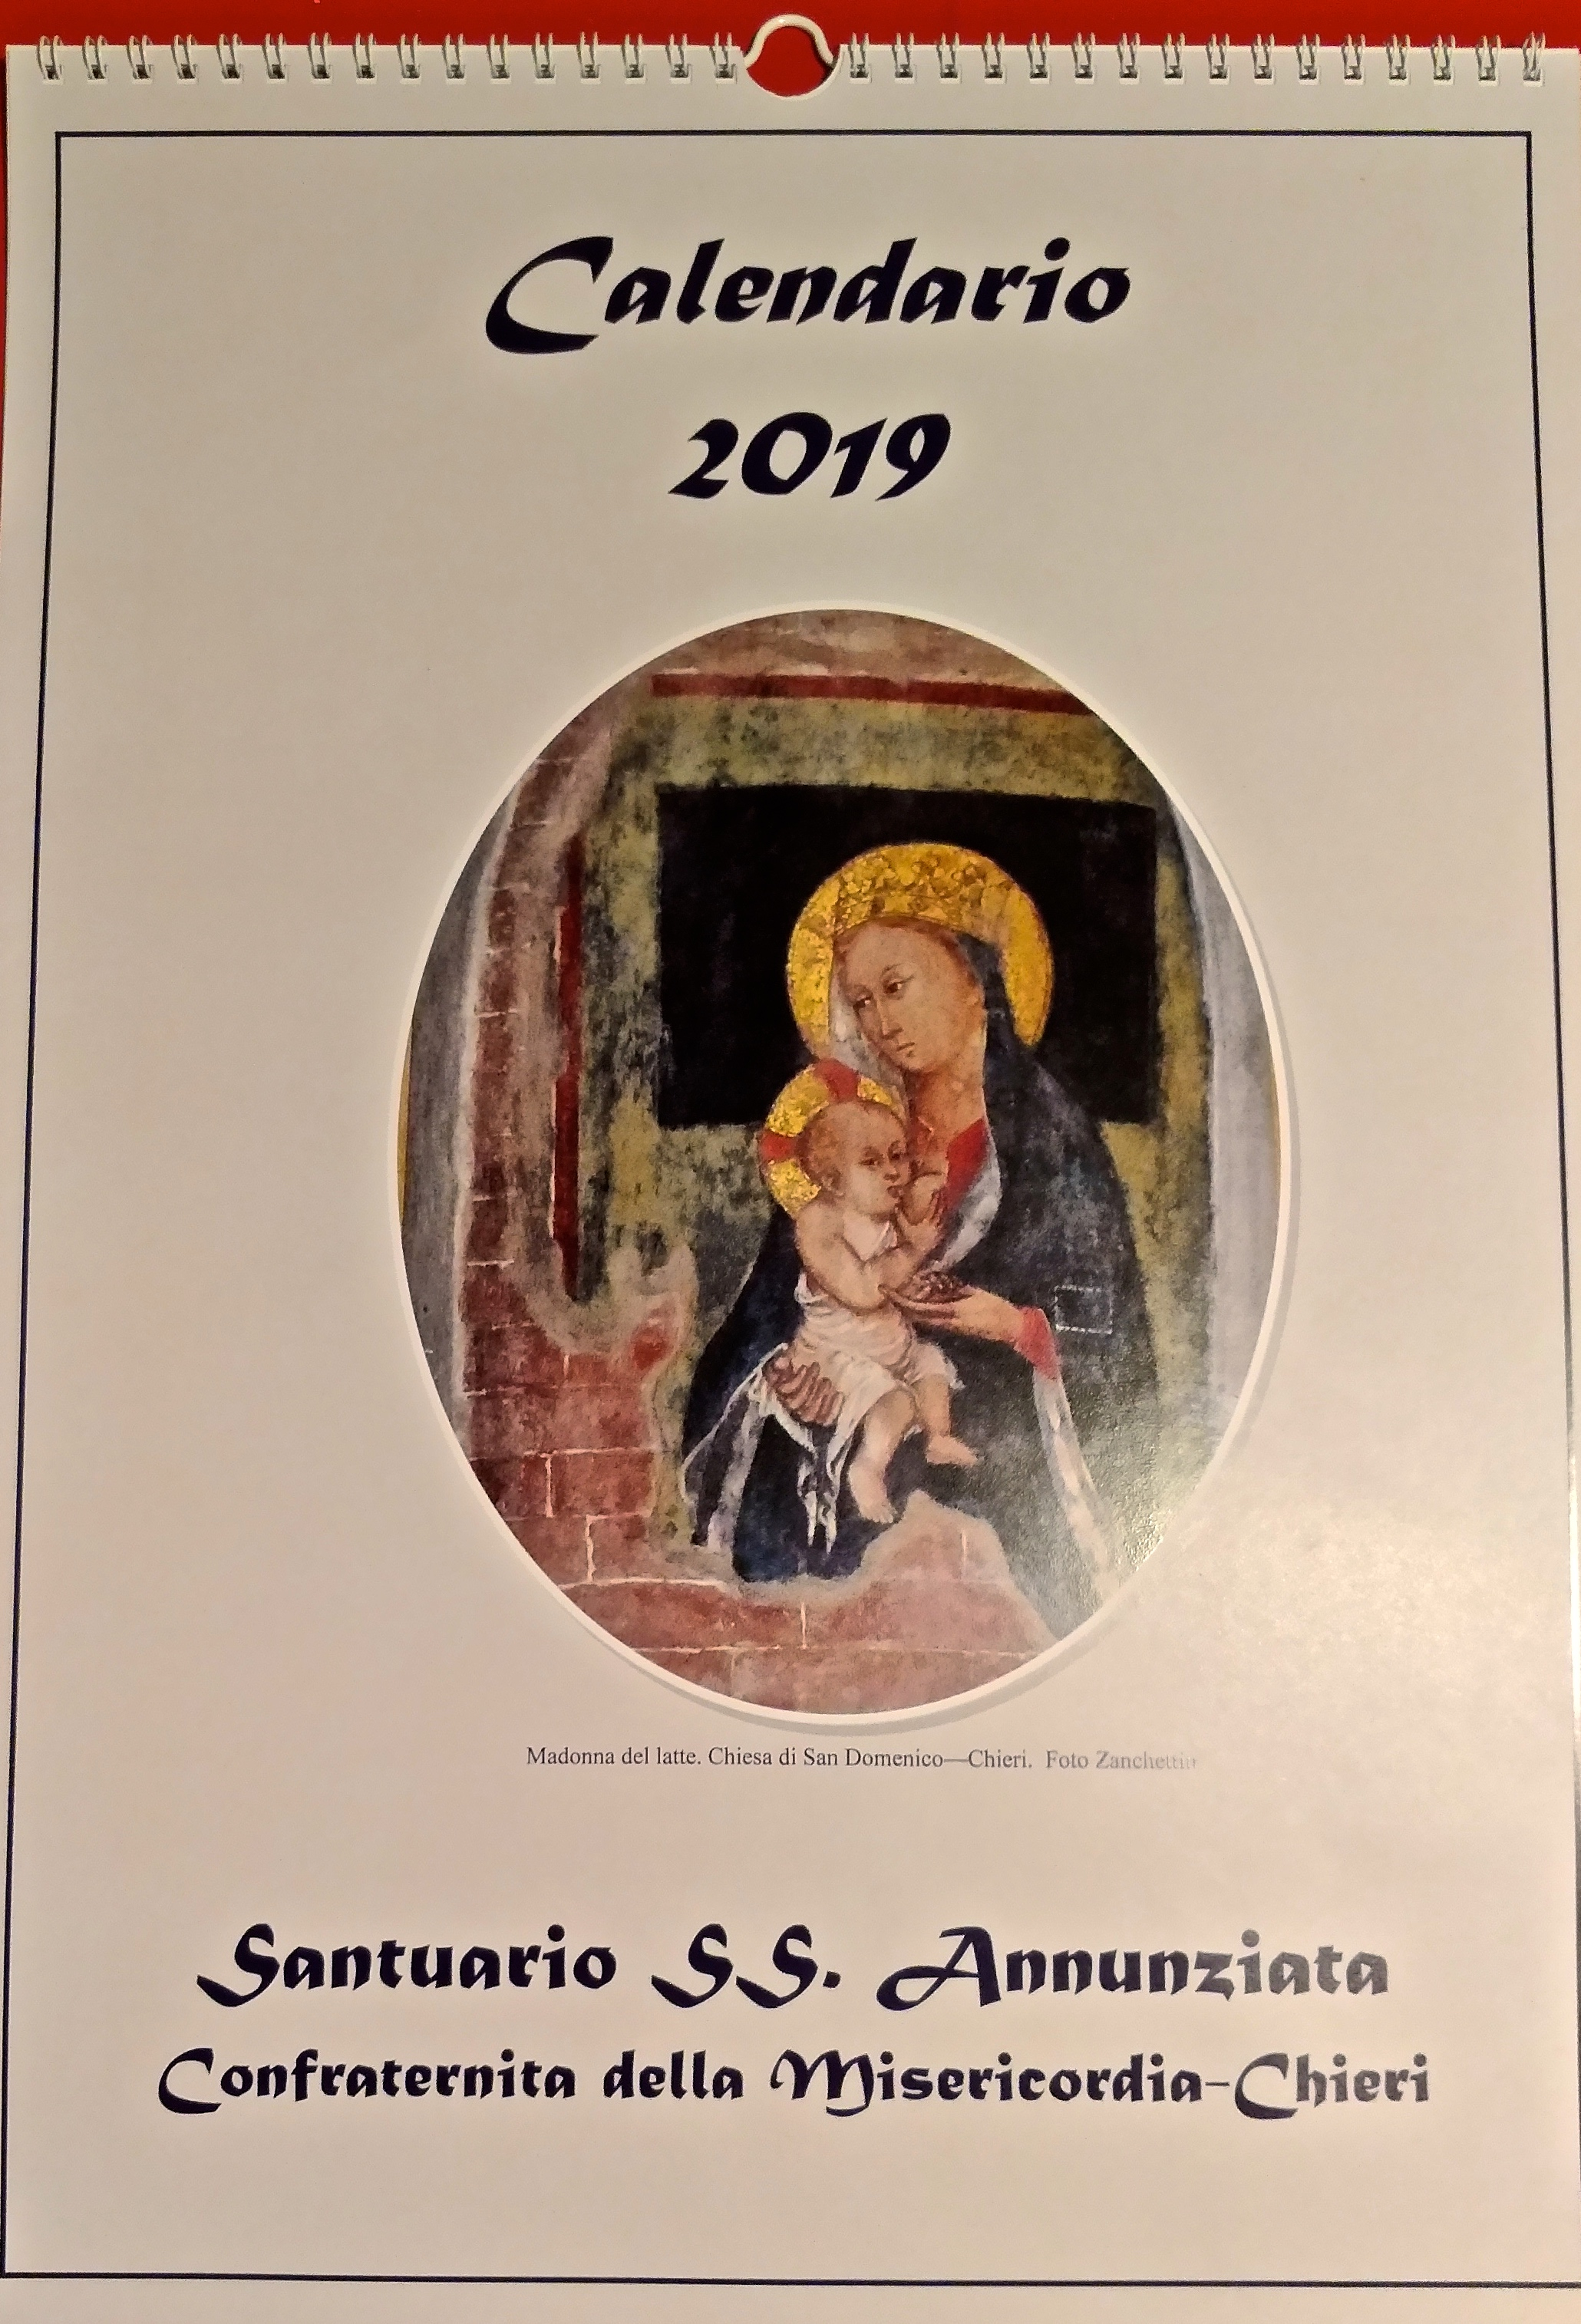 calendario confraternita chieri 2019